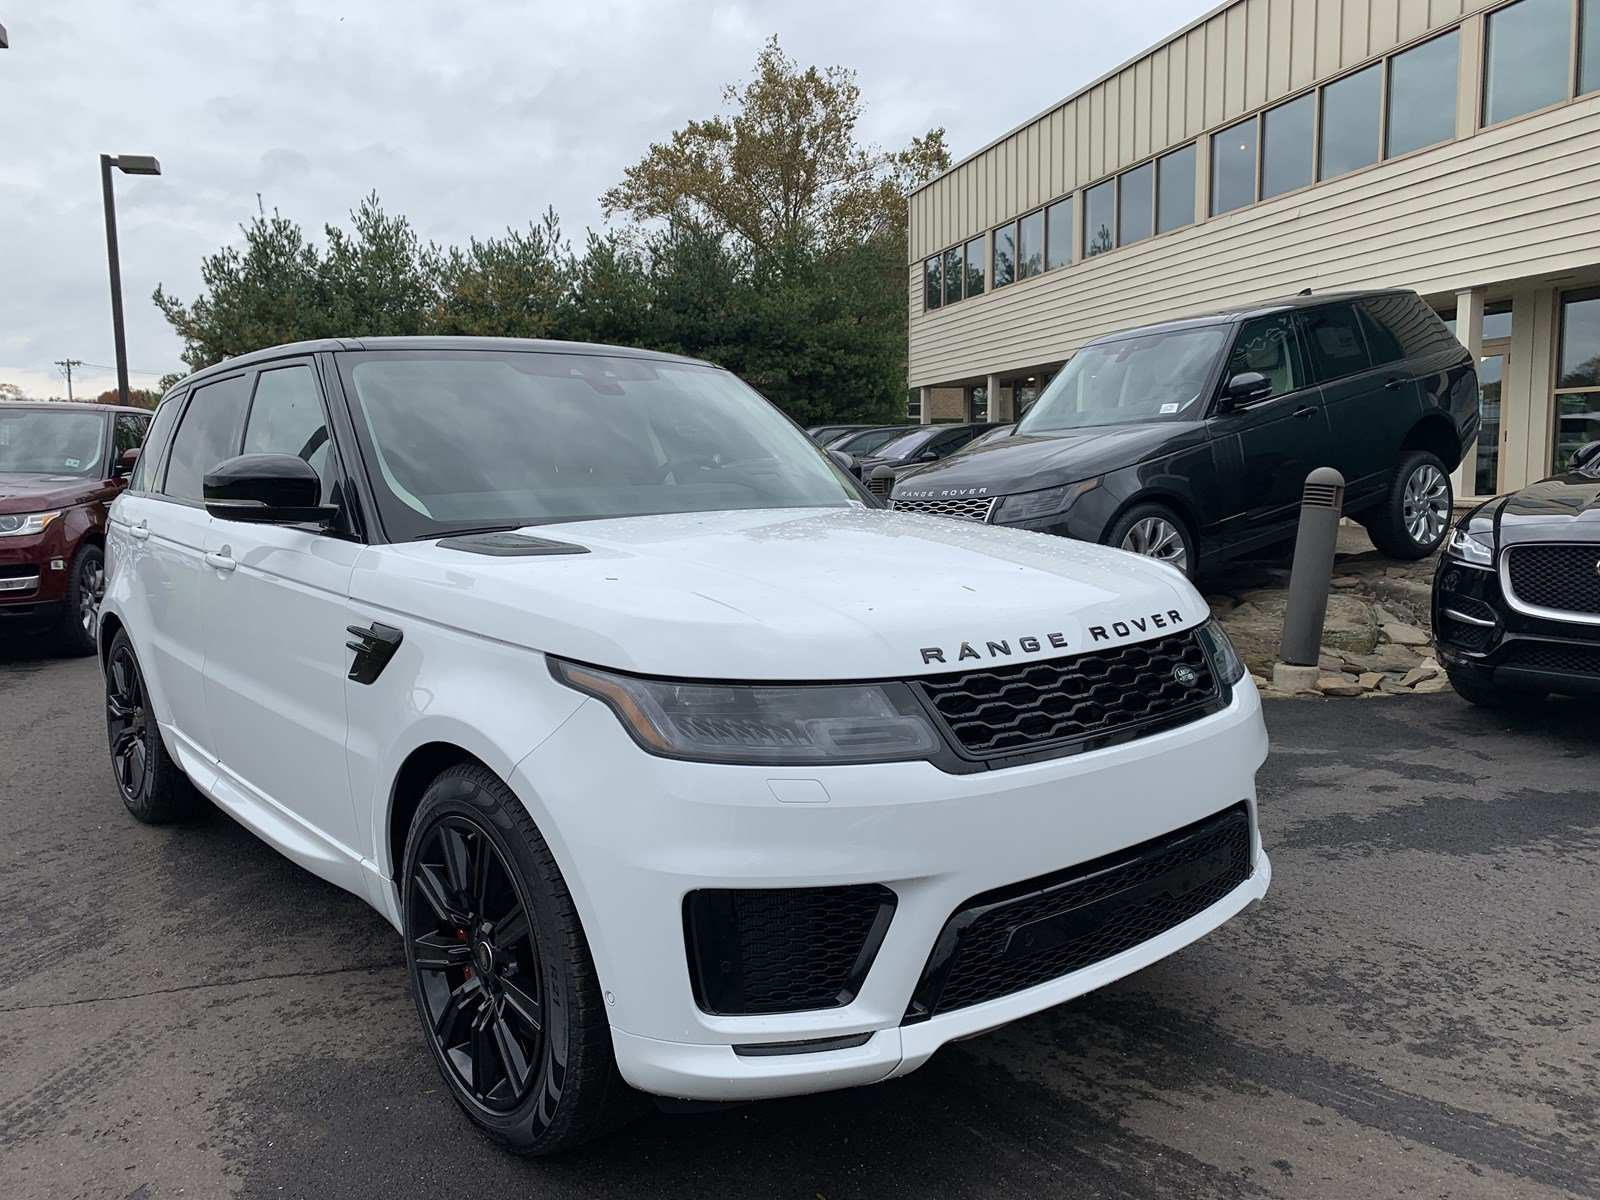 97 All New 2019 Range Rover Sport Model